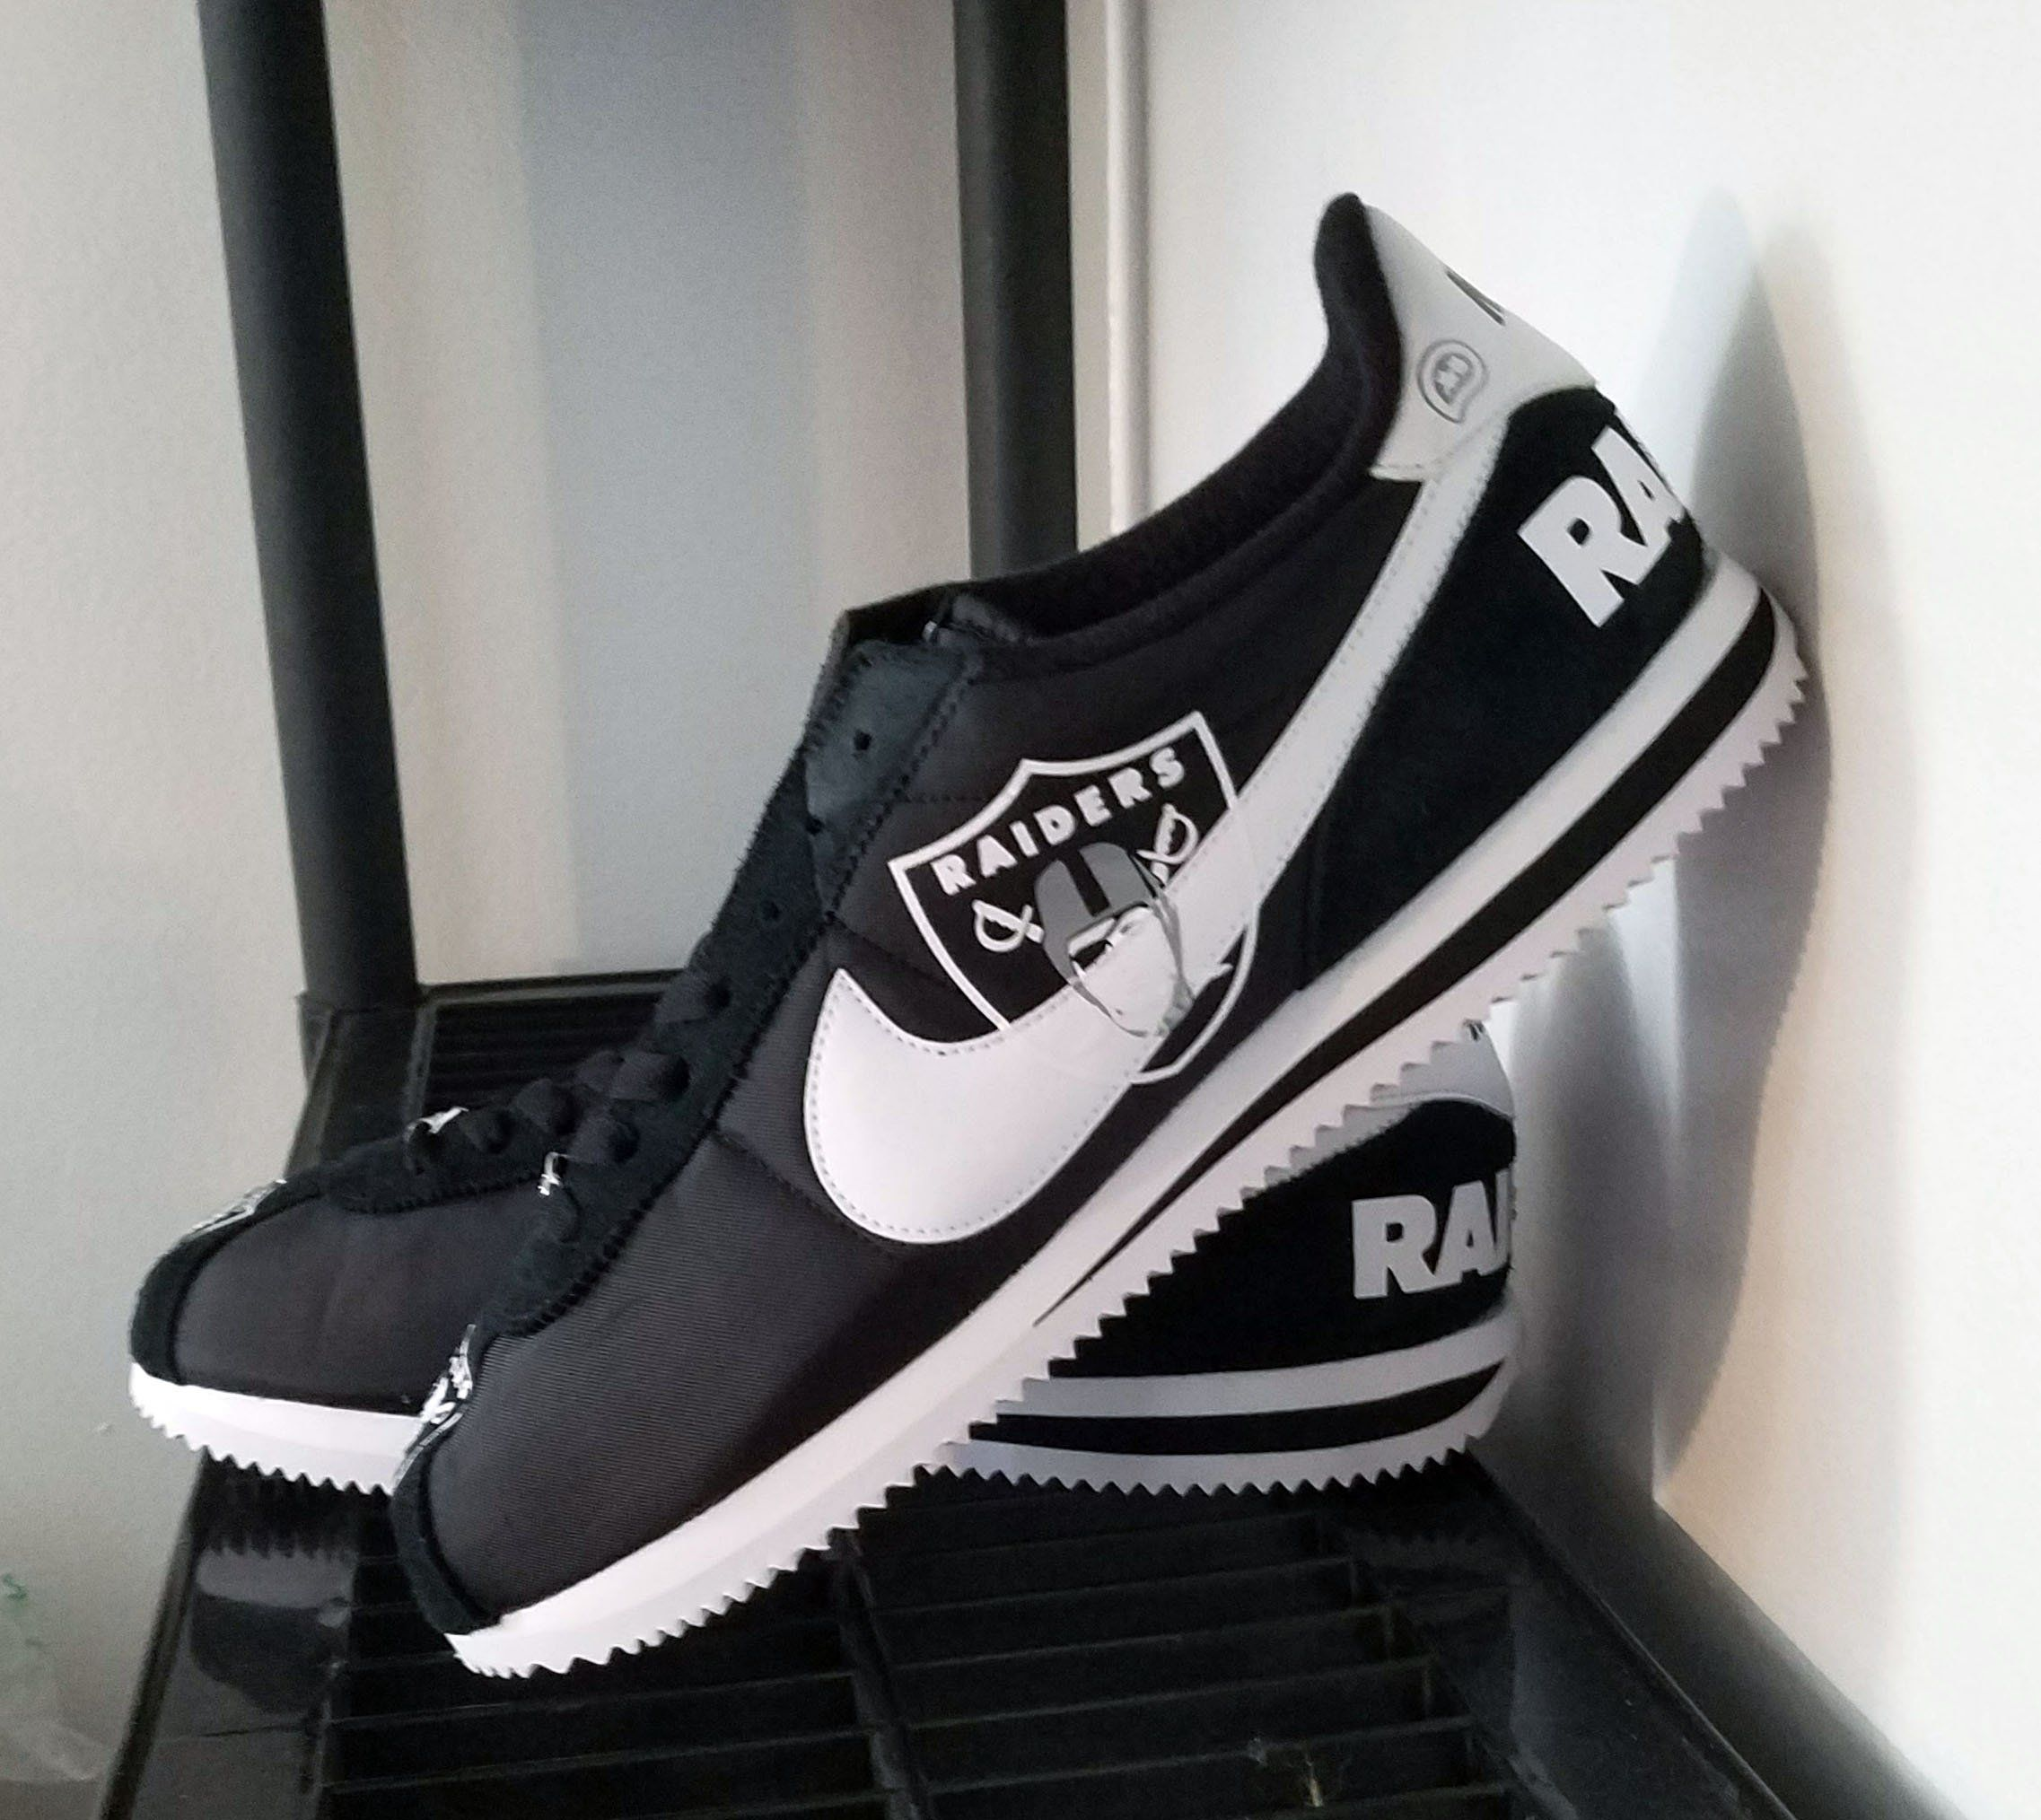 Nike Air force 1 Custom PLAY HEART Inspired free fast shipping (dhl) max 5 days worldwide